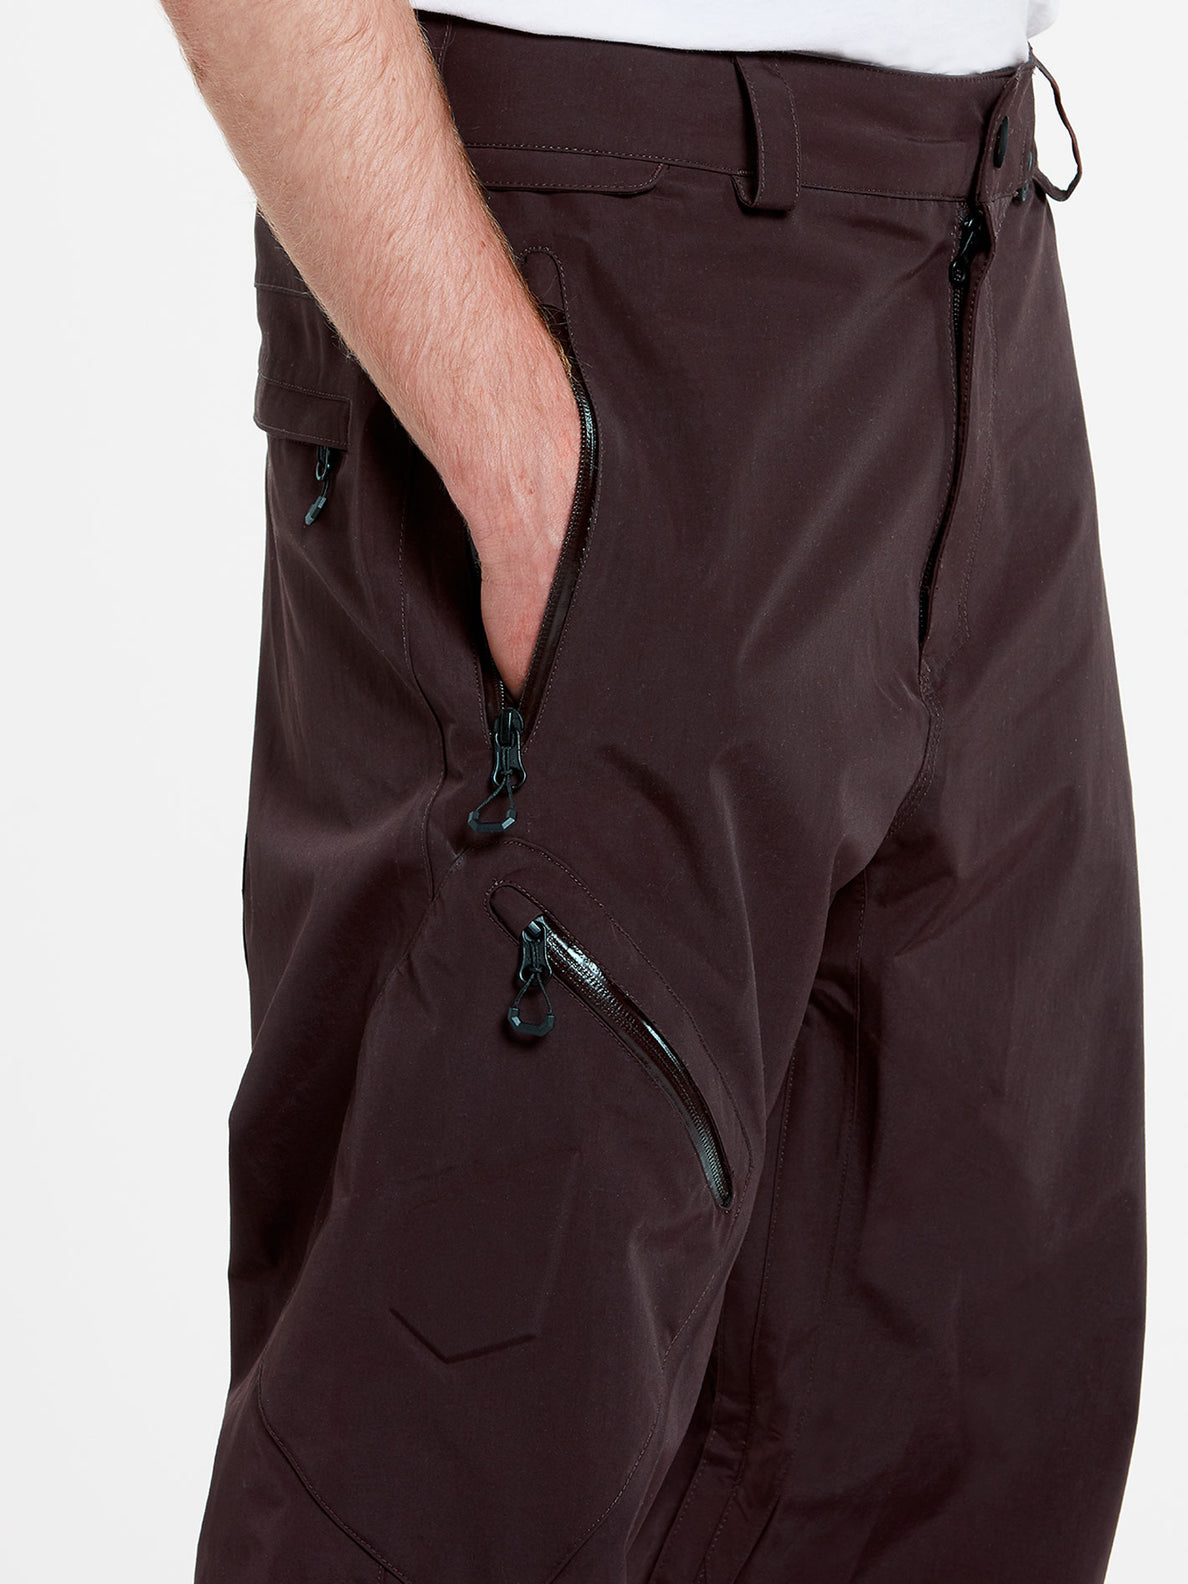 L GORE-TEX PANT - RED (G1351904_RED) [01]